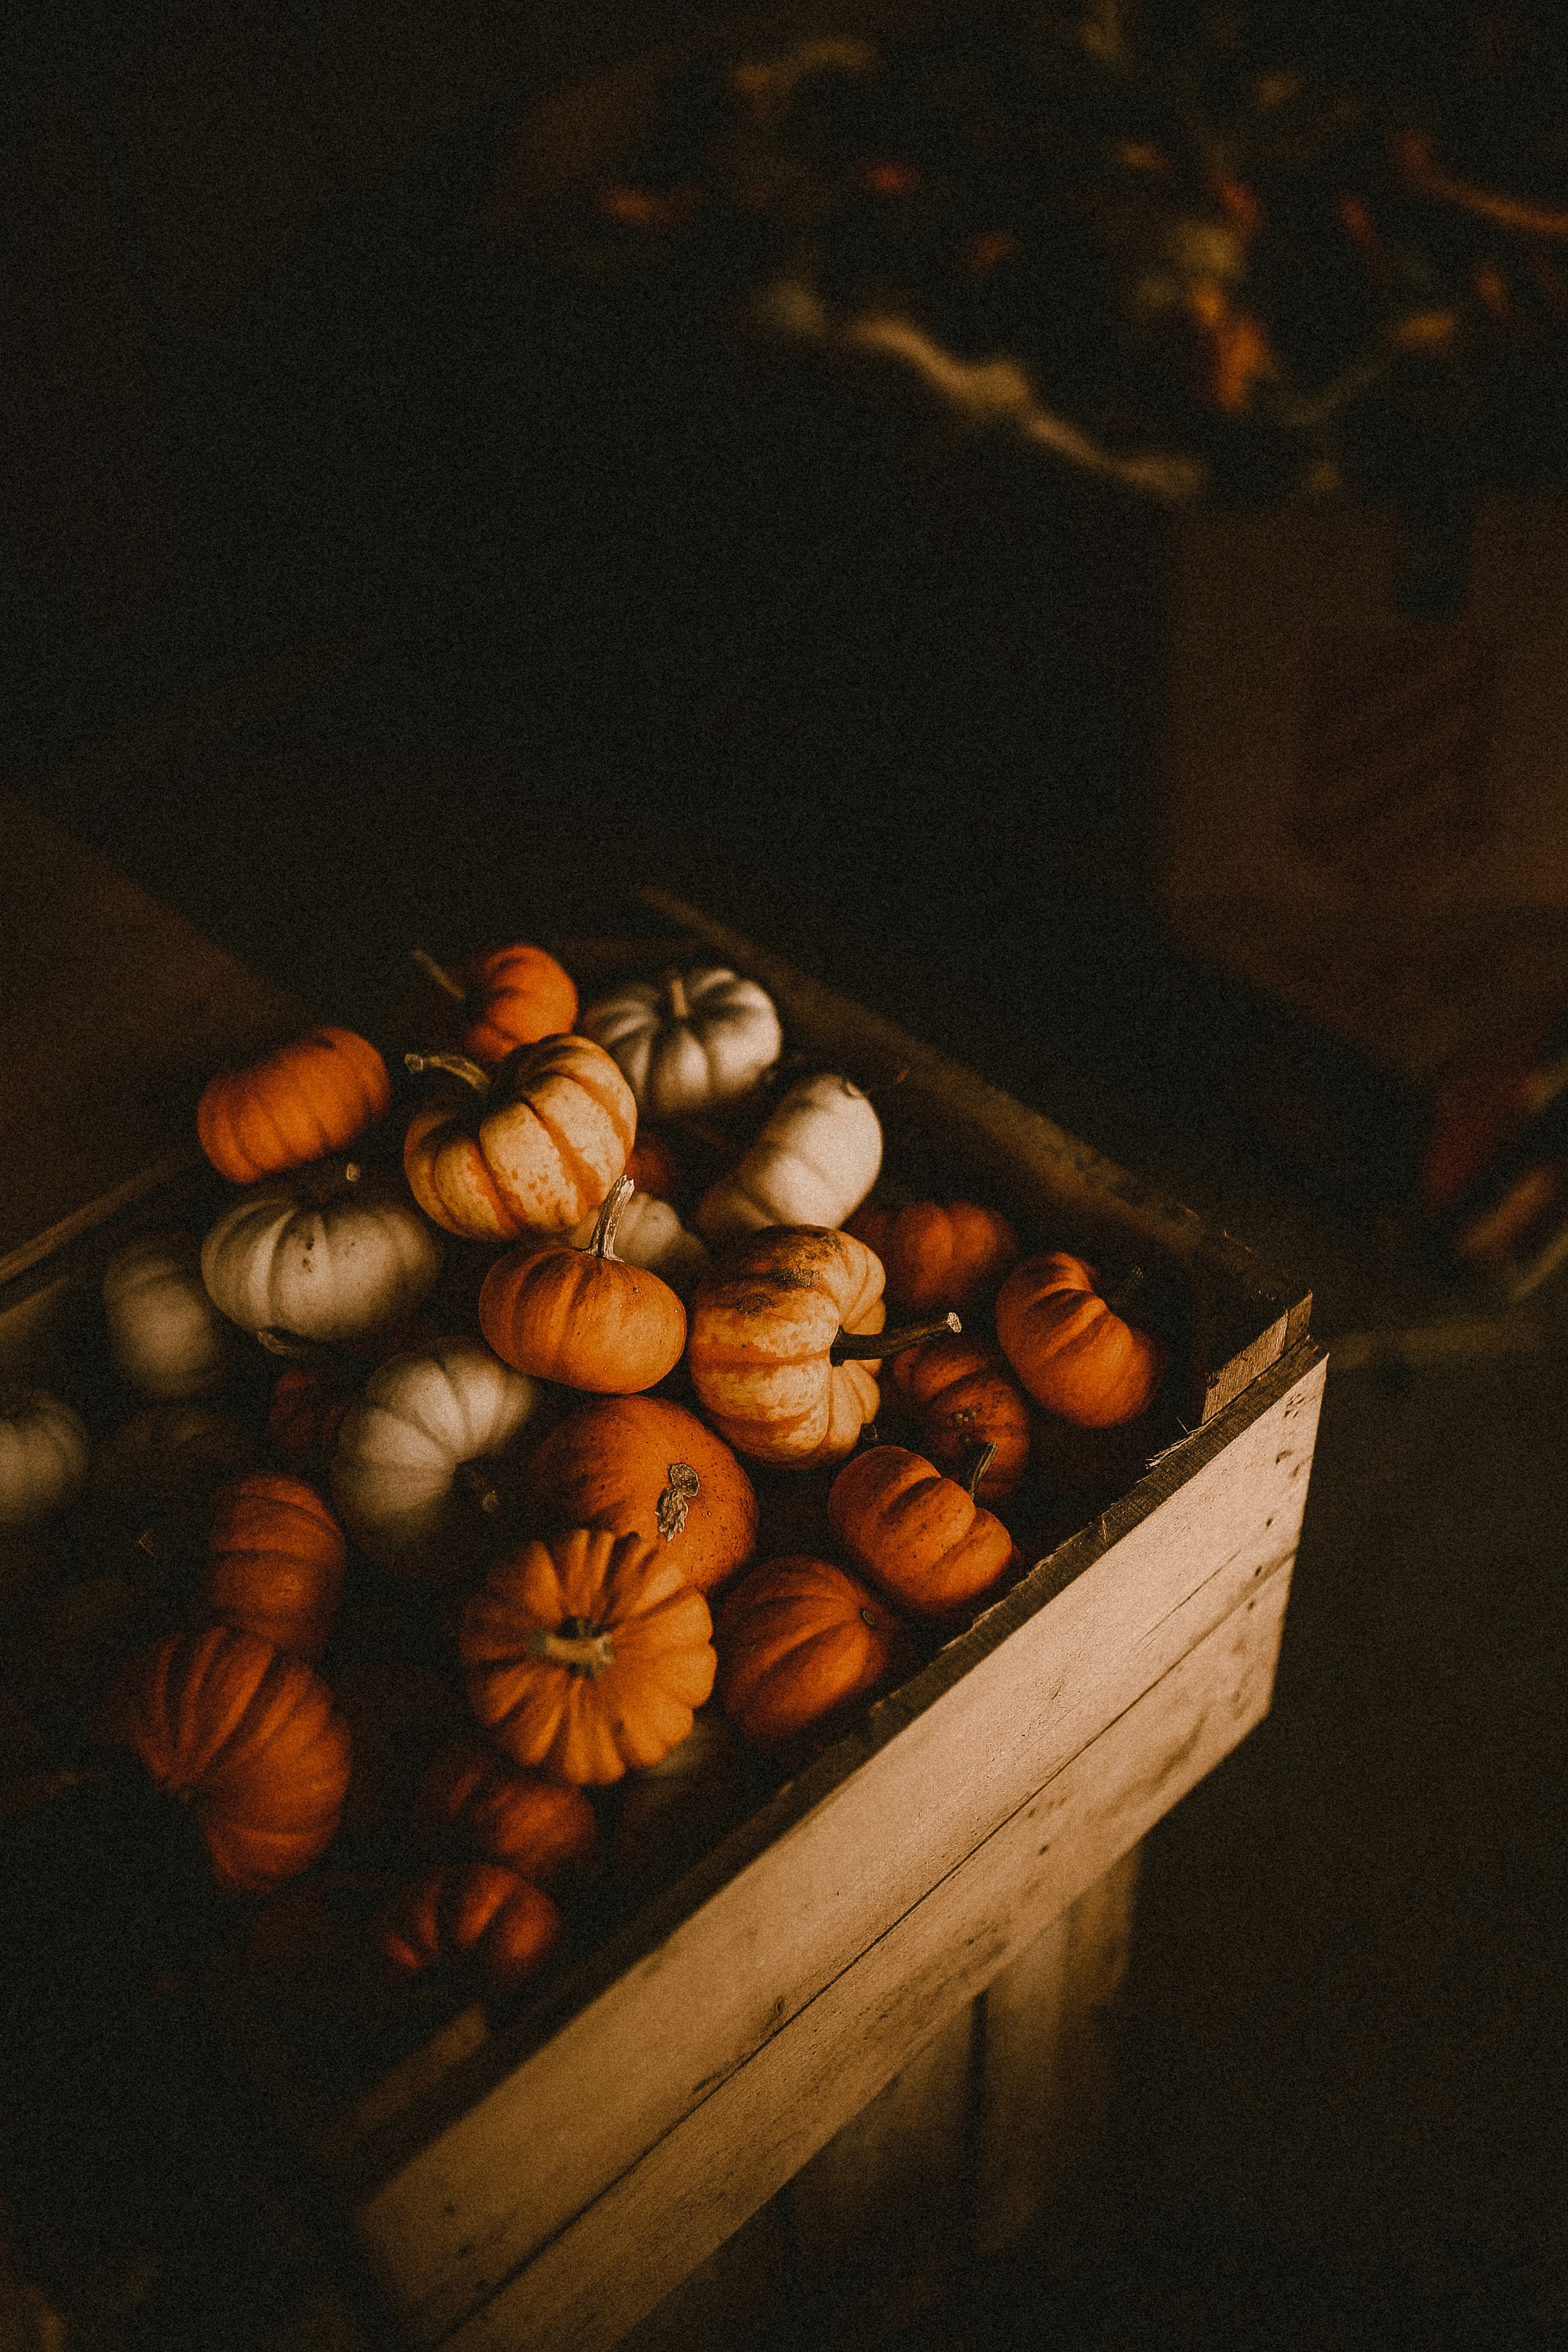 81491 Screensavers and Wallpapers Pumpkin for phone. Download Food, Pumpkin, Box, Ripe, Harvest pictures for free